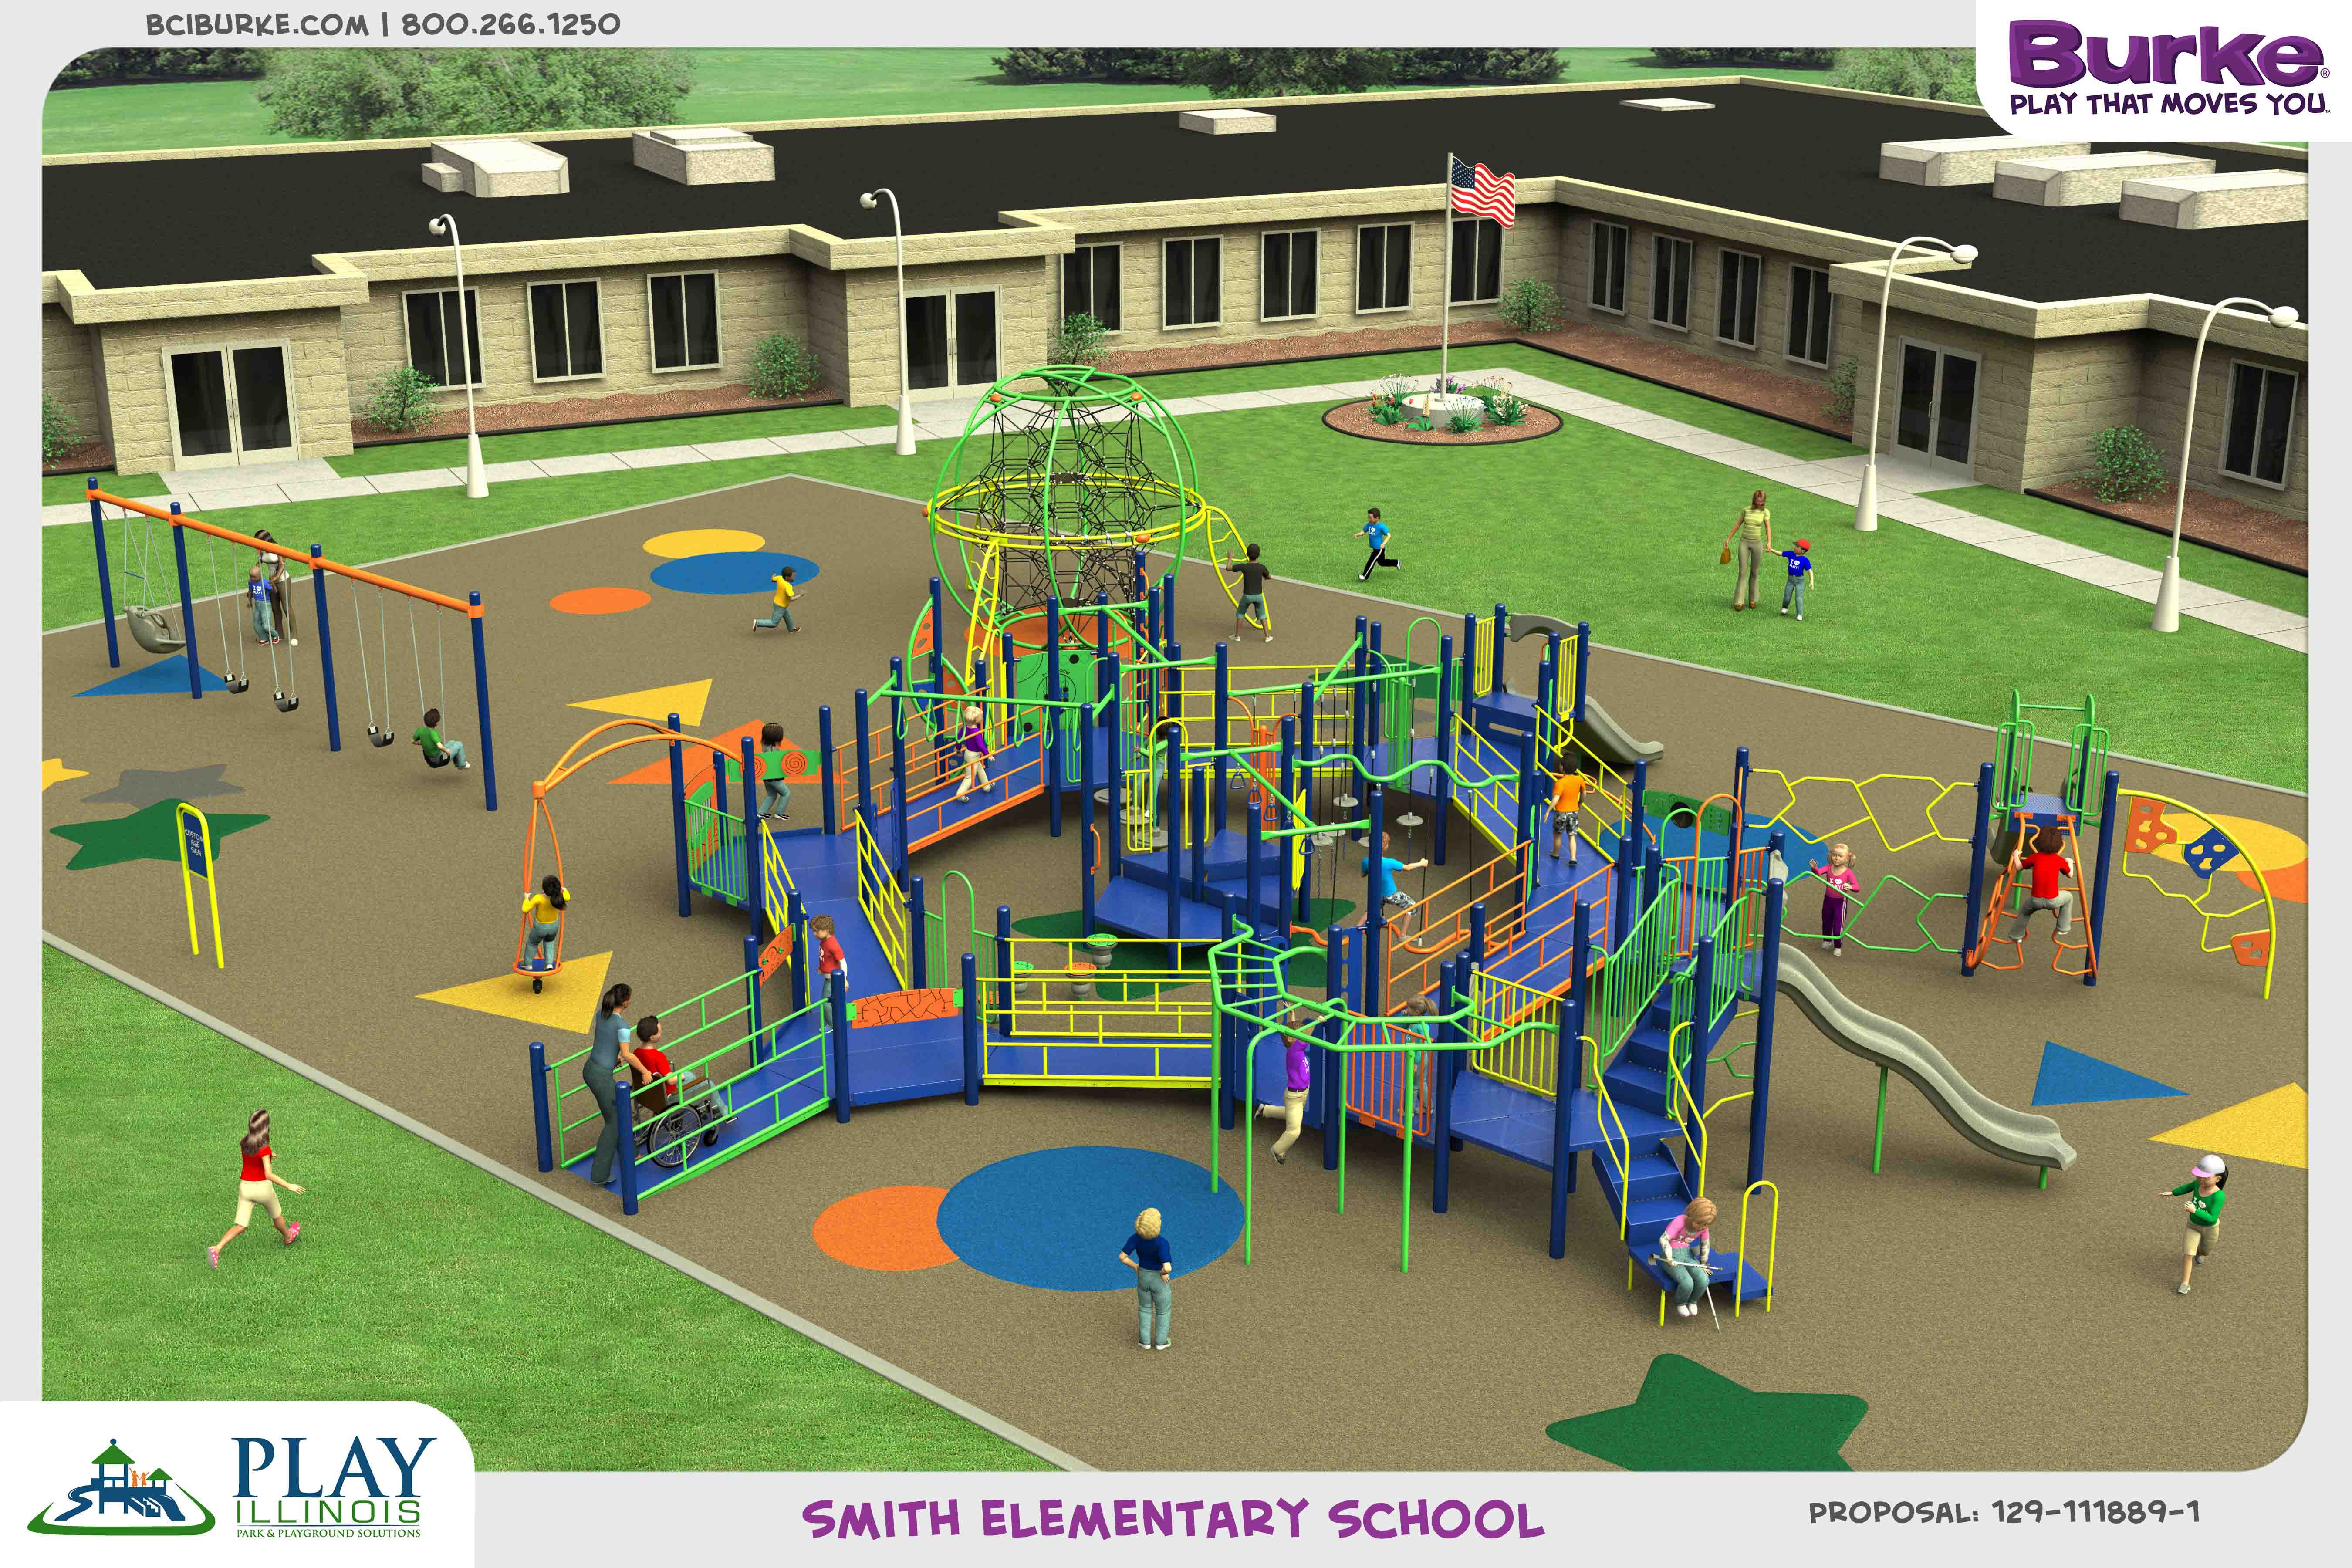 129-111889-1A-copy_MC_SmithElementary dream build play experience accessible playgrounds